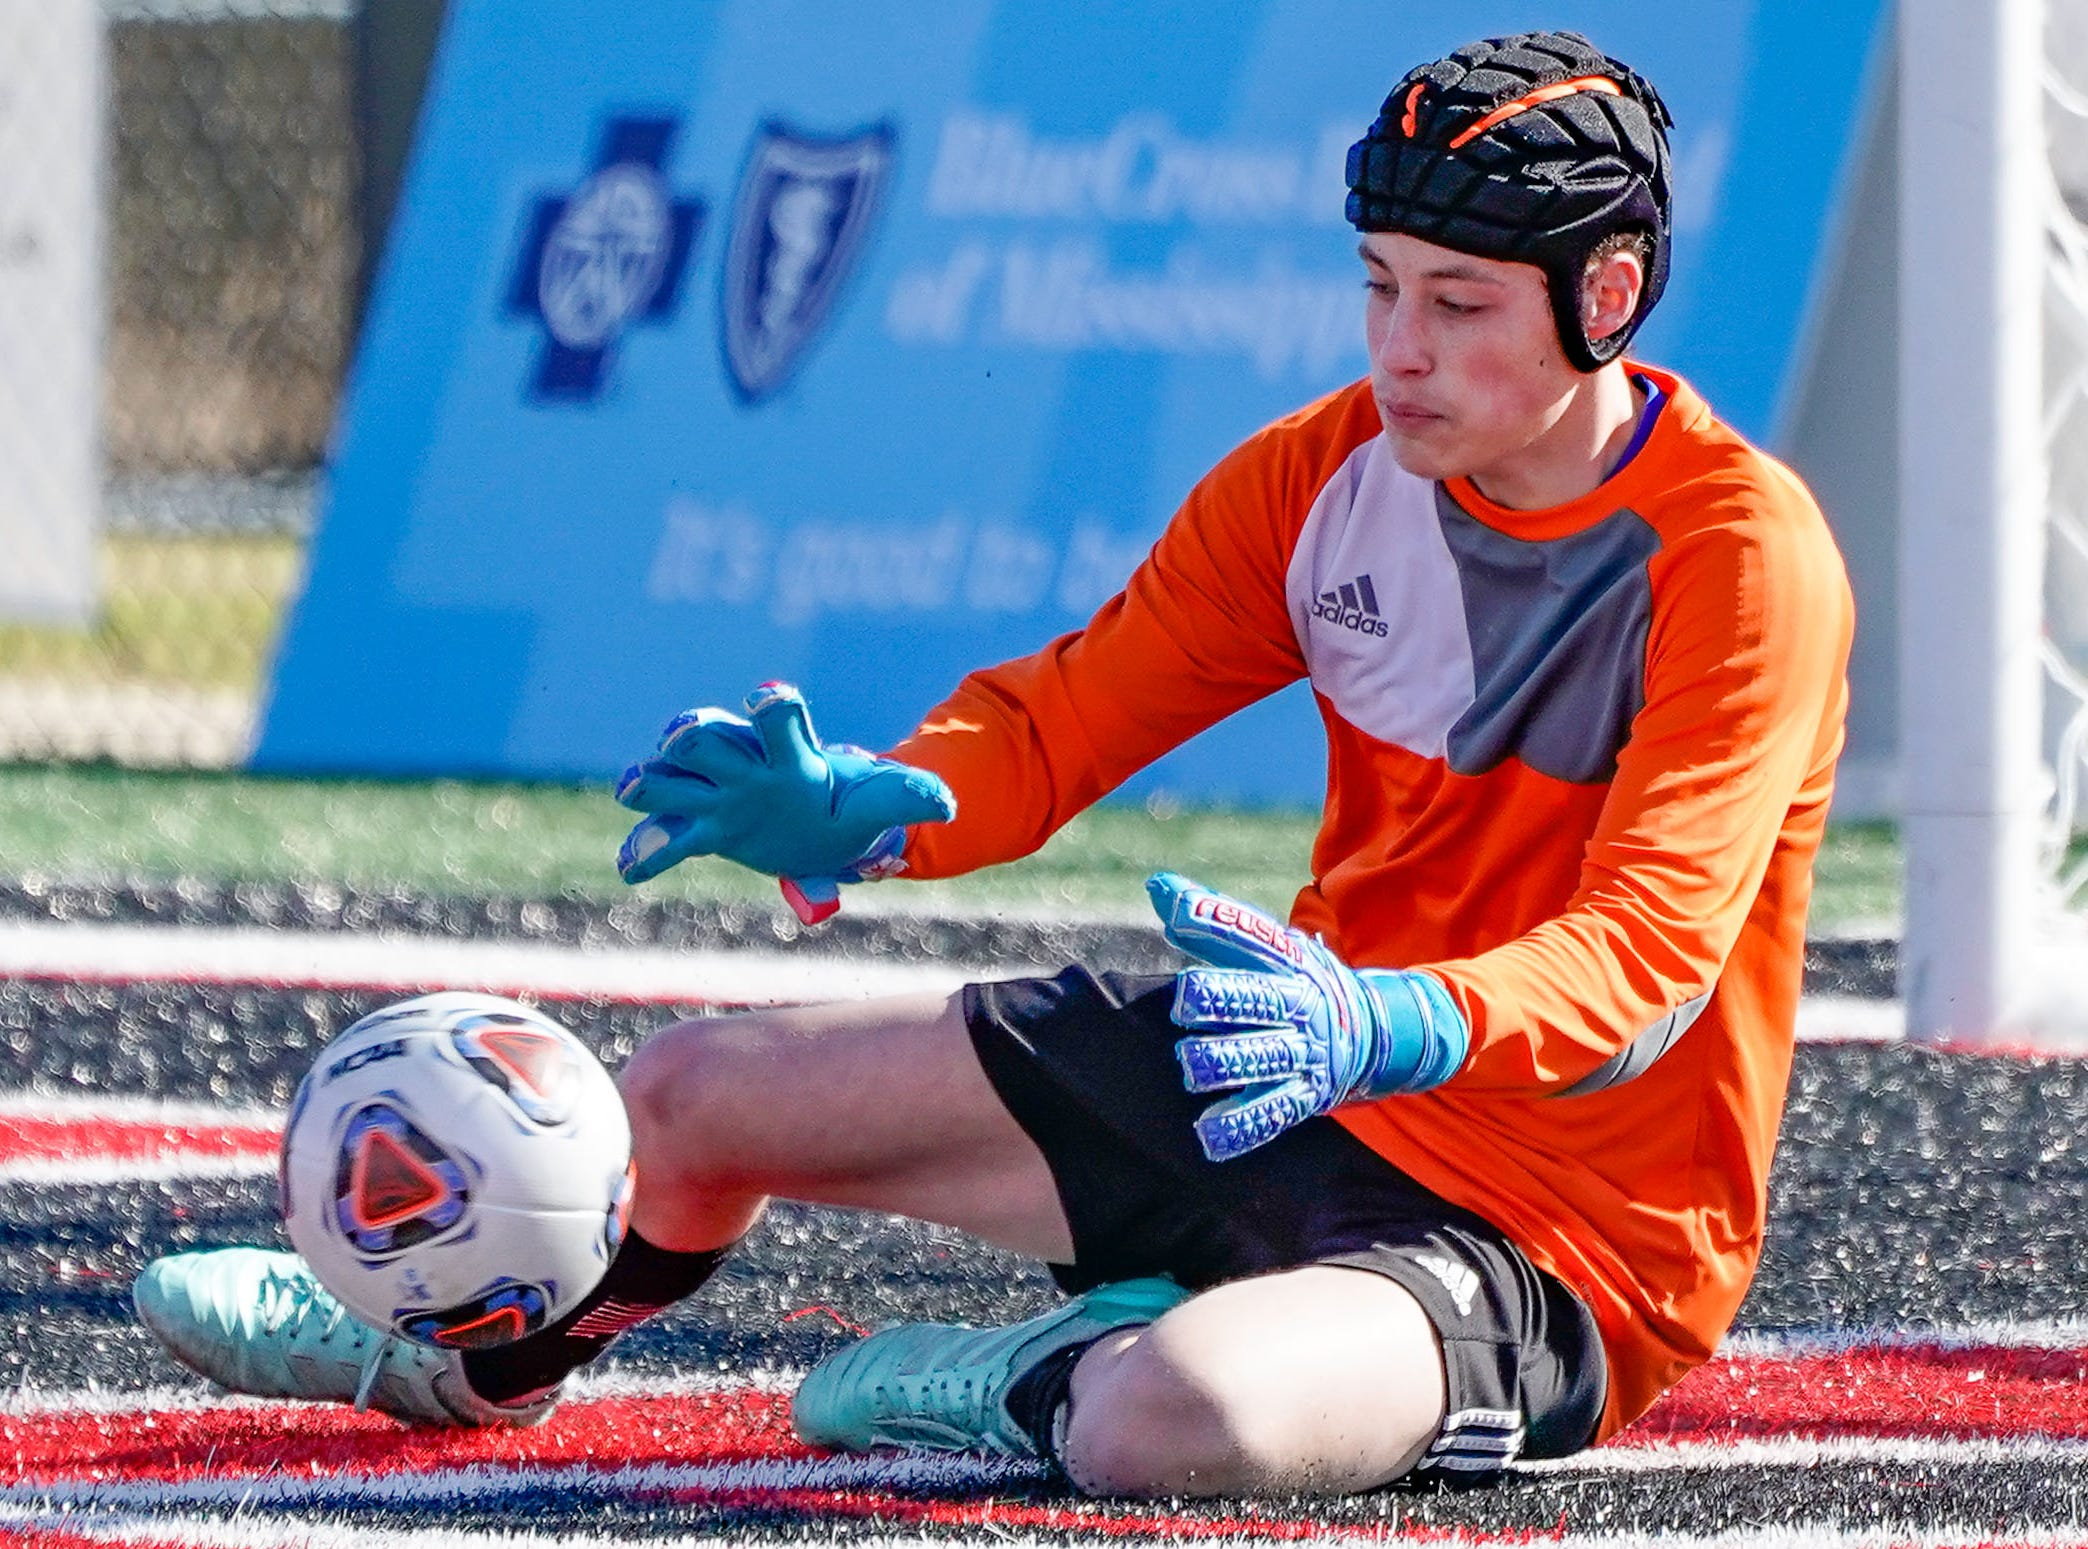 Sacred Heart keeper Jacob Painter makes a sliding save against St. Andrew's during the MHSAA 1A,2A,3A  Boys Soccer Championships held at Brandon High School in Brandon, MS, Saturday February 9, 2019.(Bob Smith-For The Clarion Ledger)